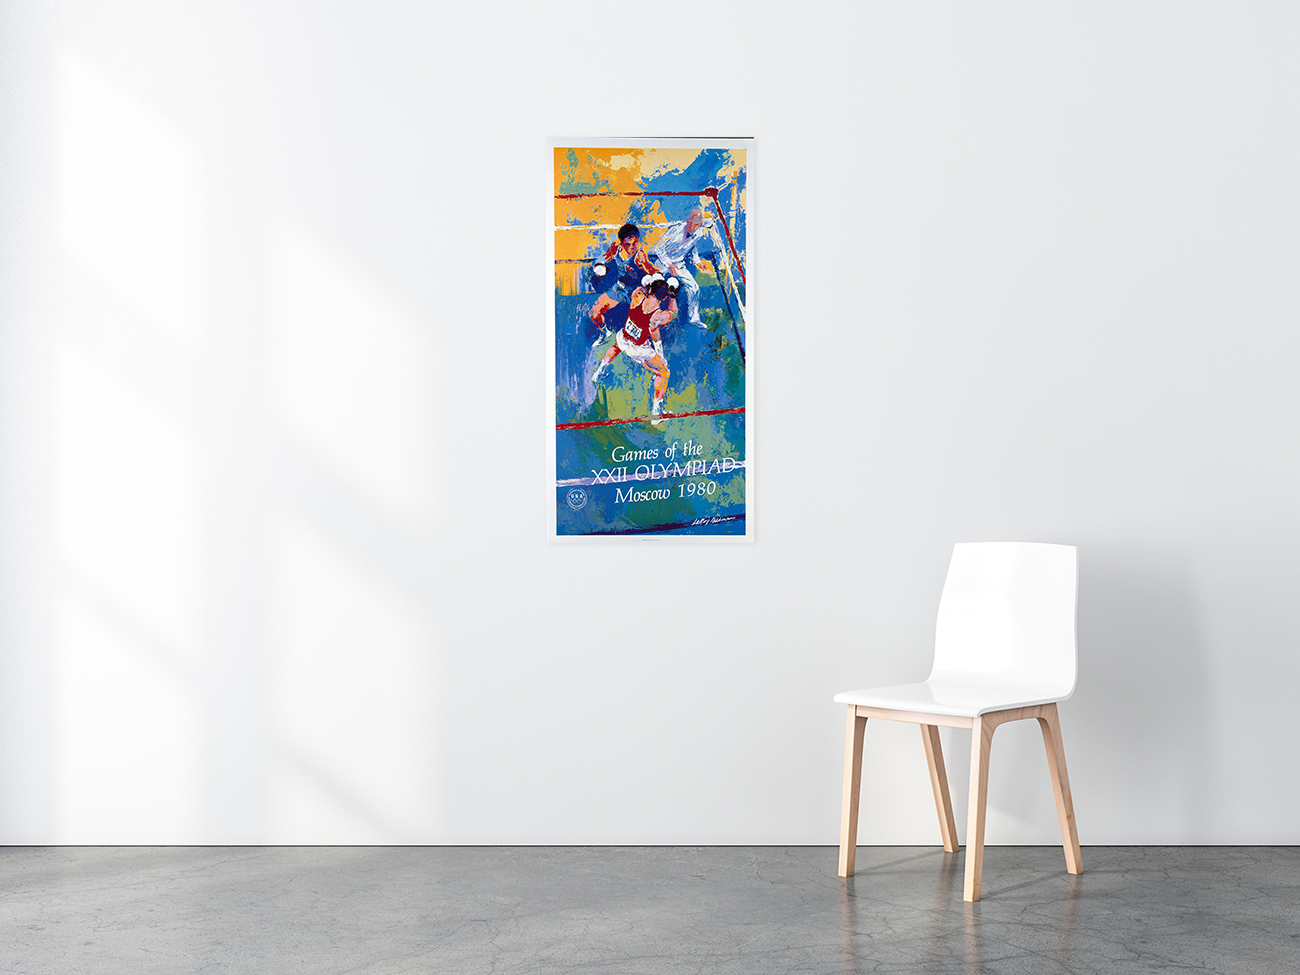 Games of the XXII Olympiad Moscow Olympic Boxing poster in situ